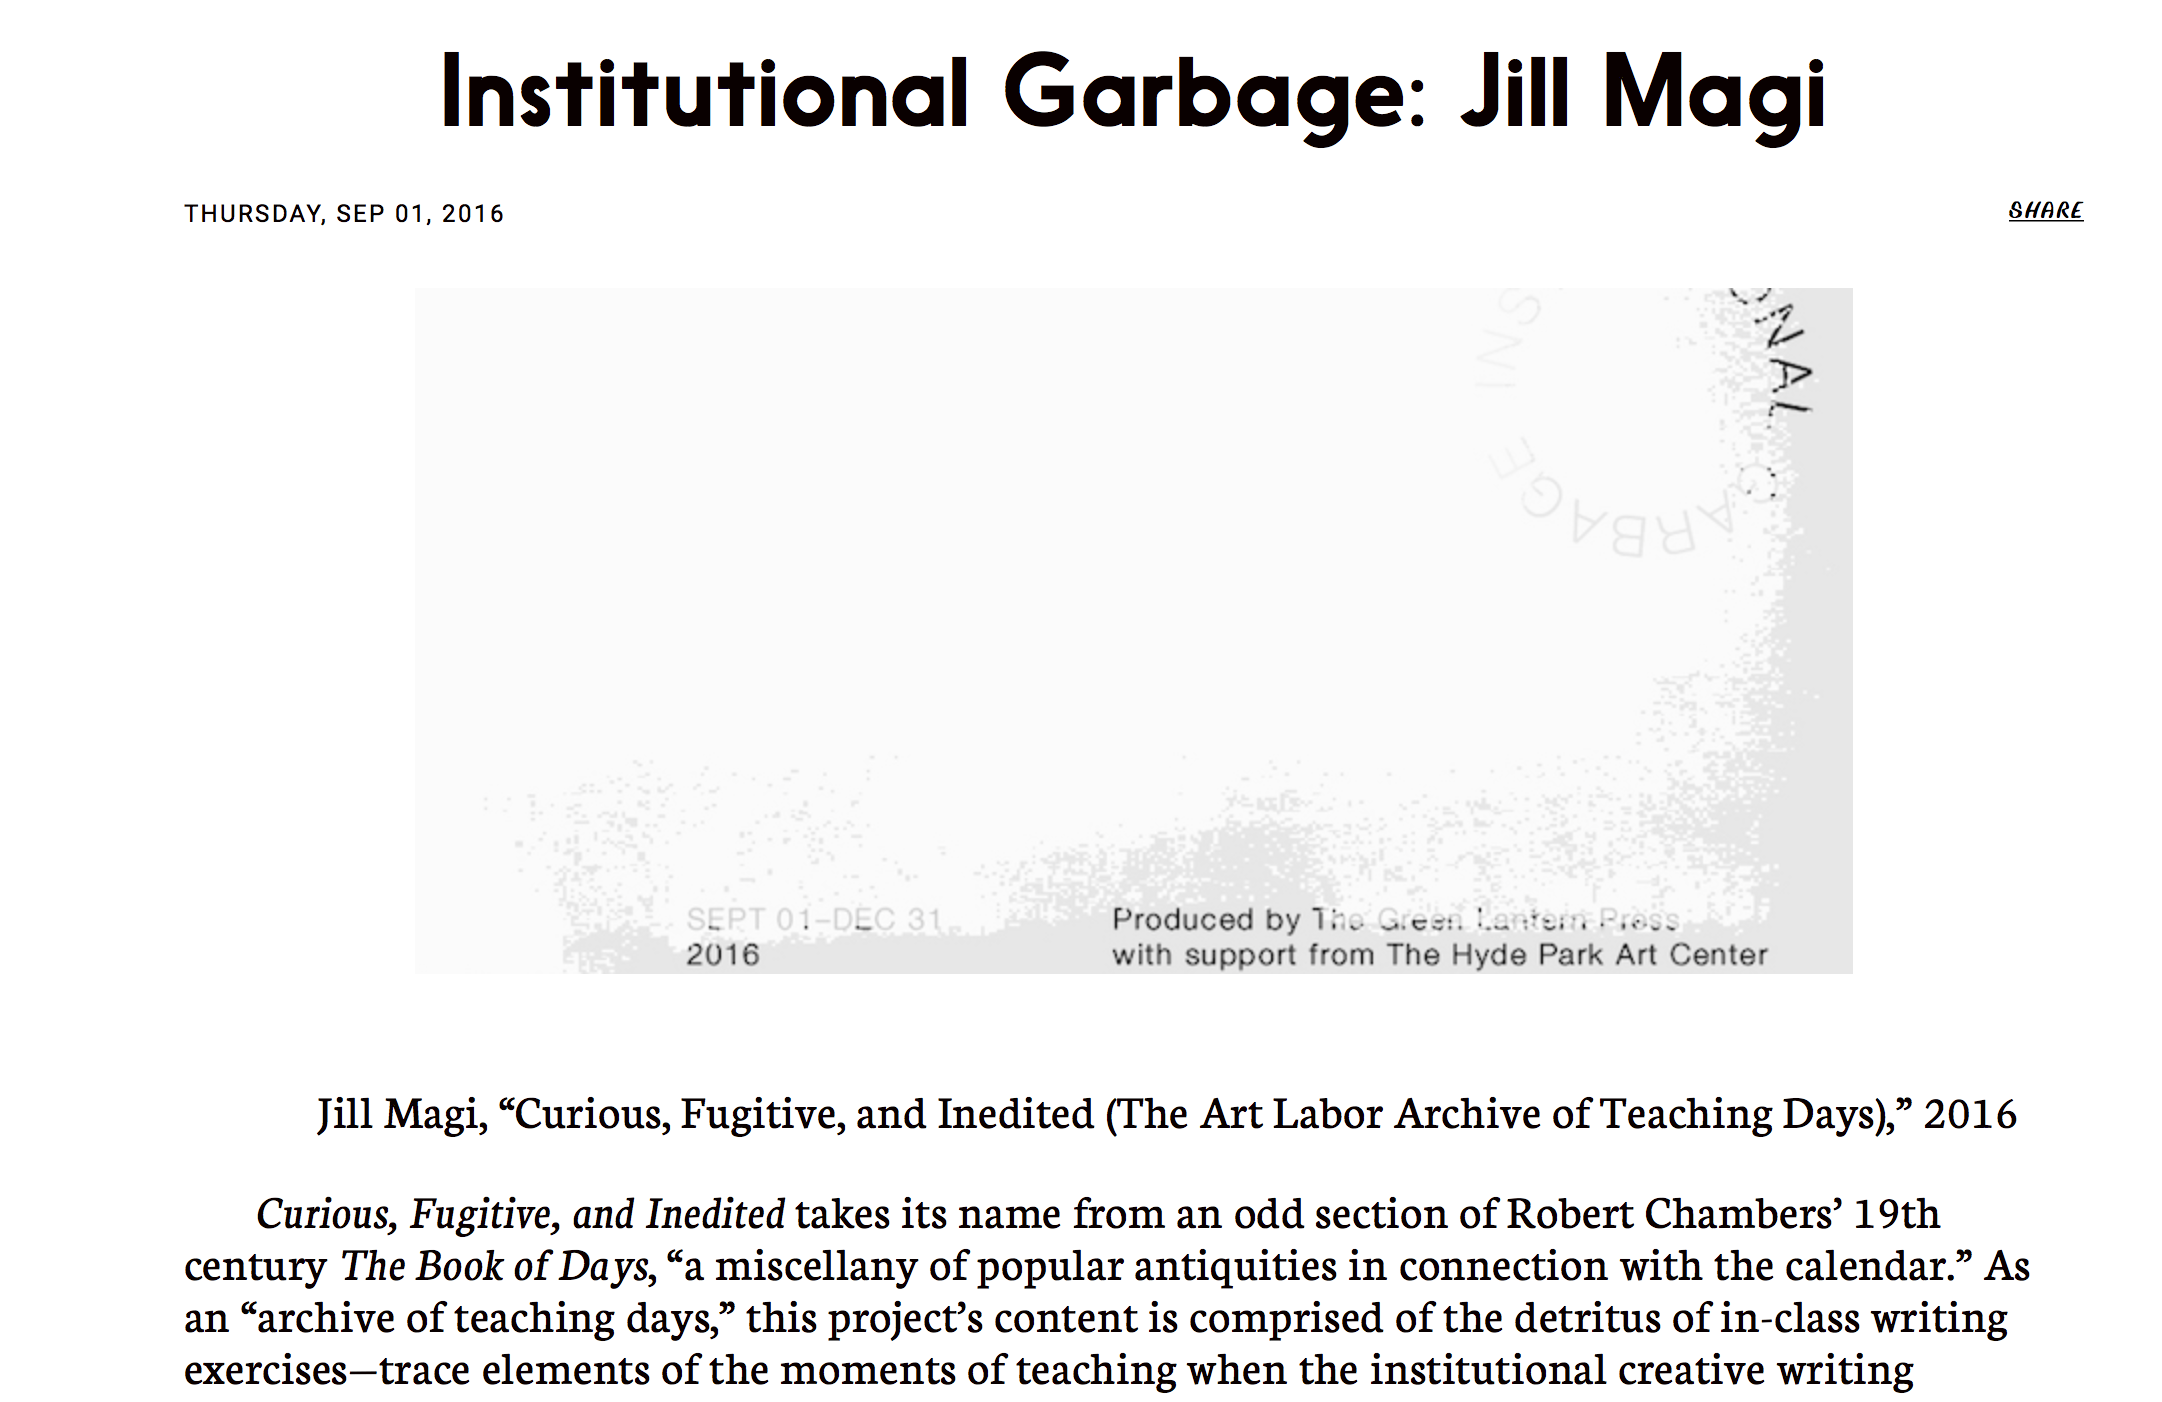 """Screenshot of Jill Magi's """"Curious, Fugitive, and Inedited (The Art Labor Archive of Teaching Days)"""" from """"Institutional Garbage,"""" Fall 2016"""